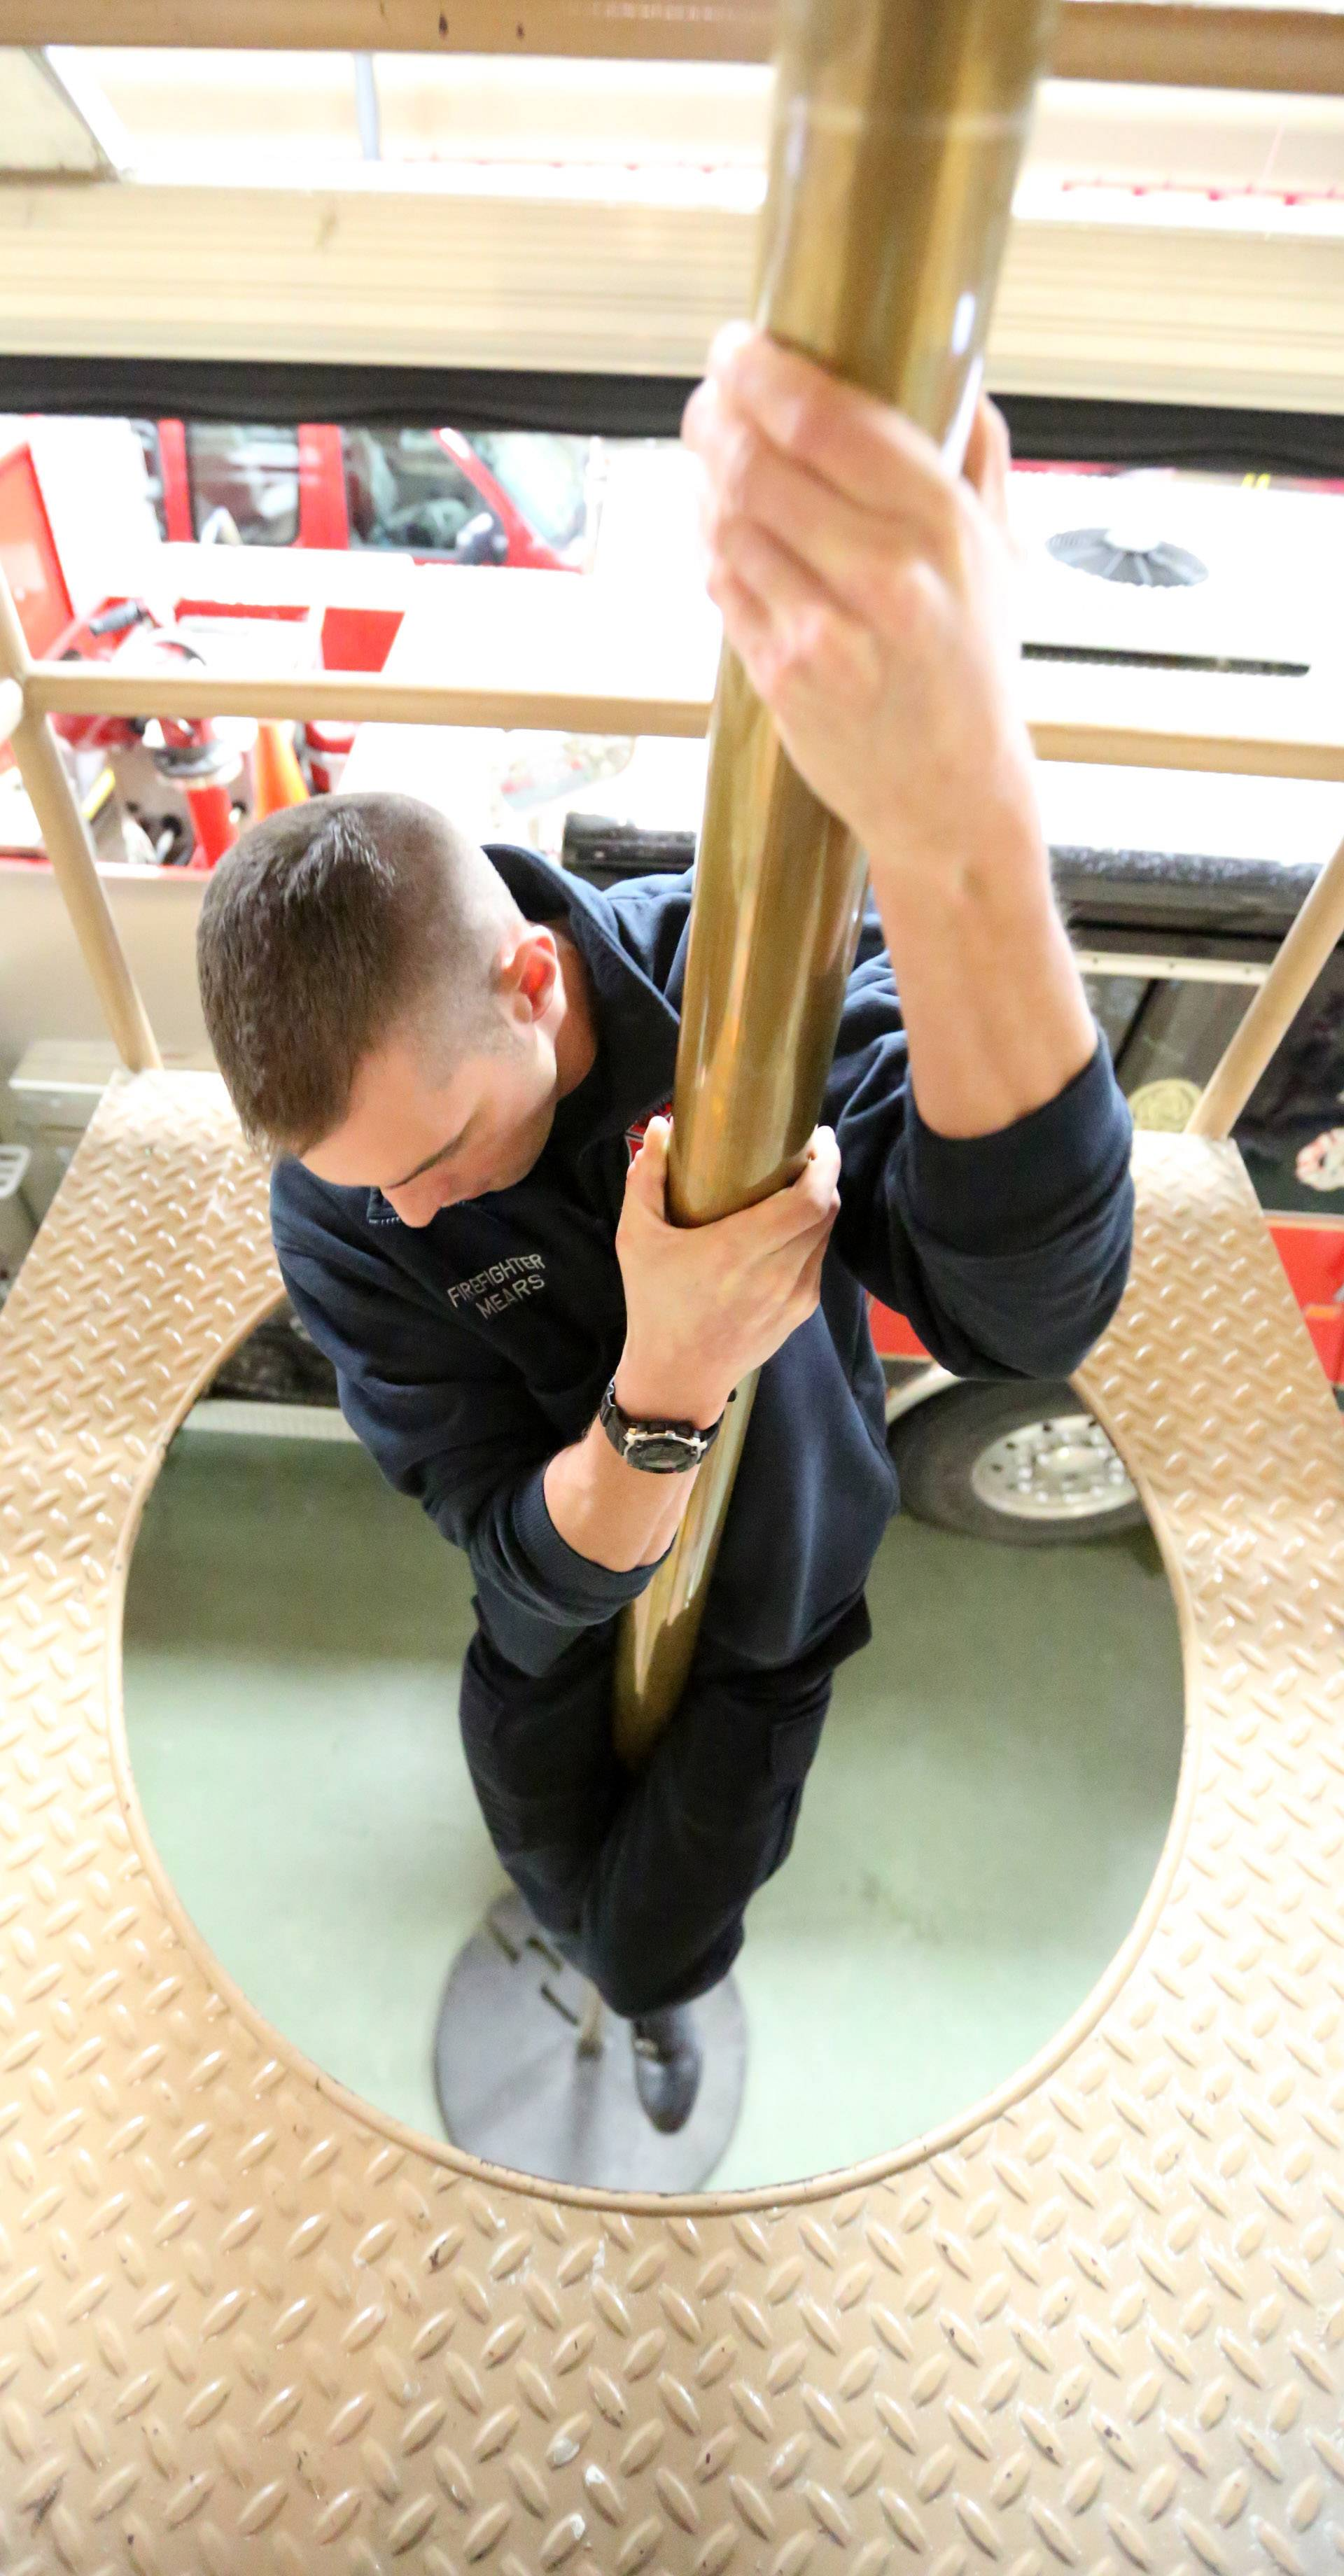 Streamwood firefighter/paramedic Brandon Mears simulates going down the Streamwood Fire Station No. 1's pole on Thursday in Streamwood. Mears said it's the only Streamwood station with a pole and the firefighters really use it. Their bunks are near the the top of the pole.